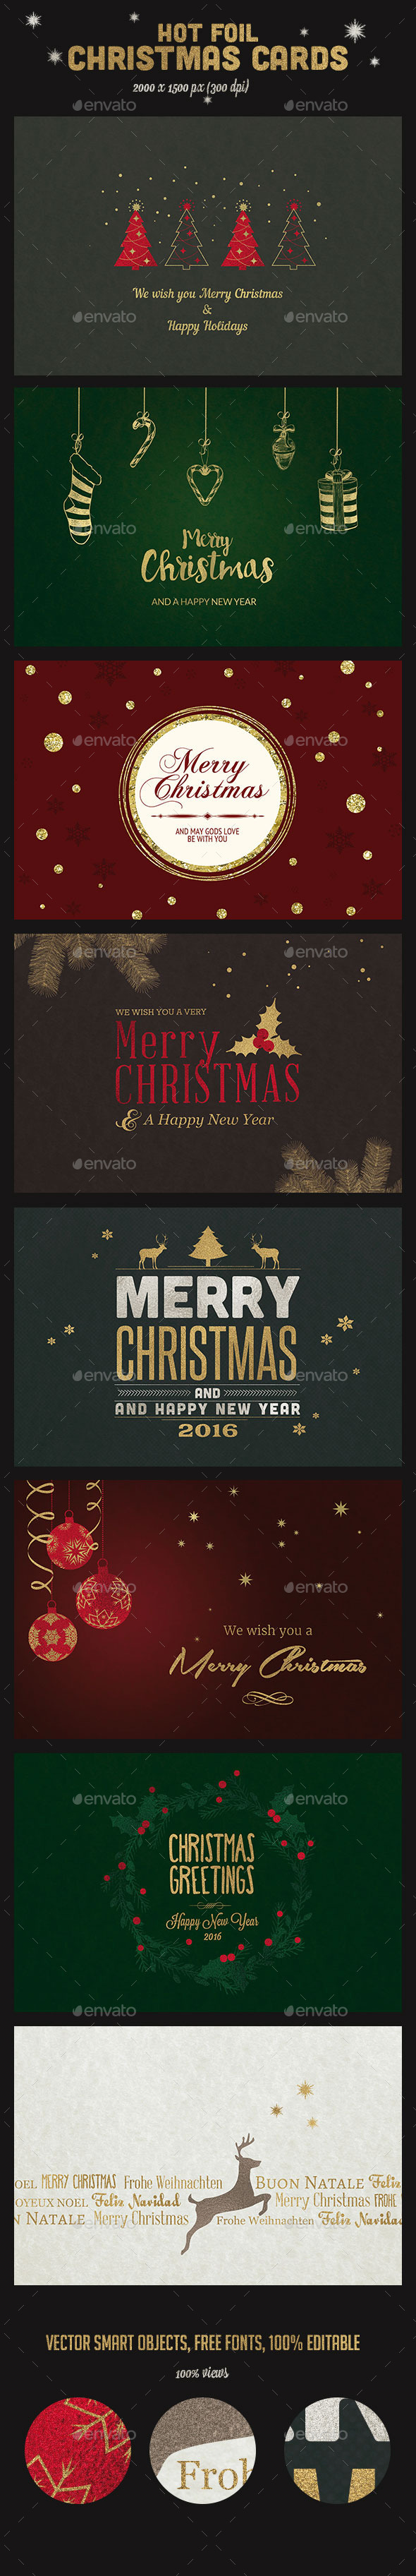 9 Hot Foil Christmas Backgrounds / Cards - Holiday Greeting Cards